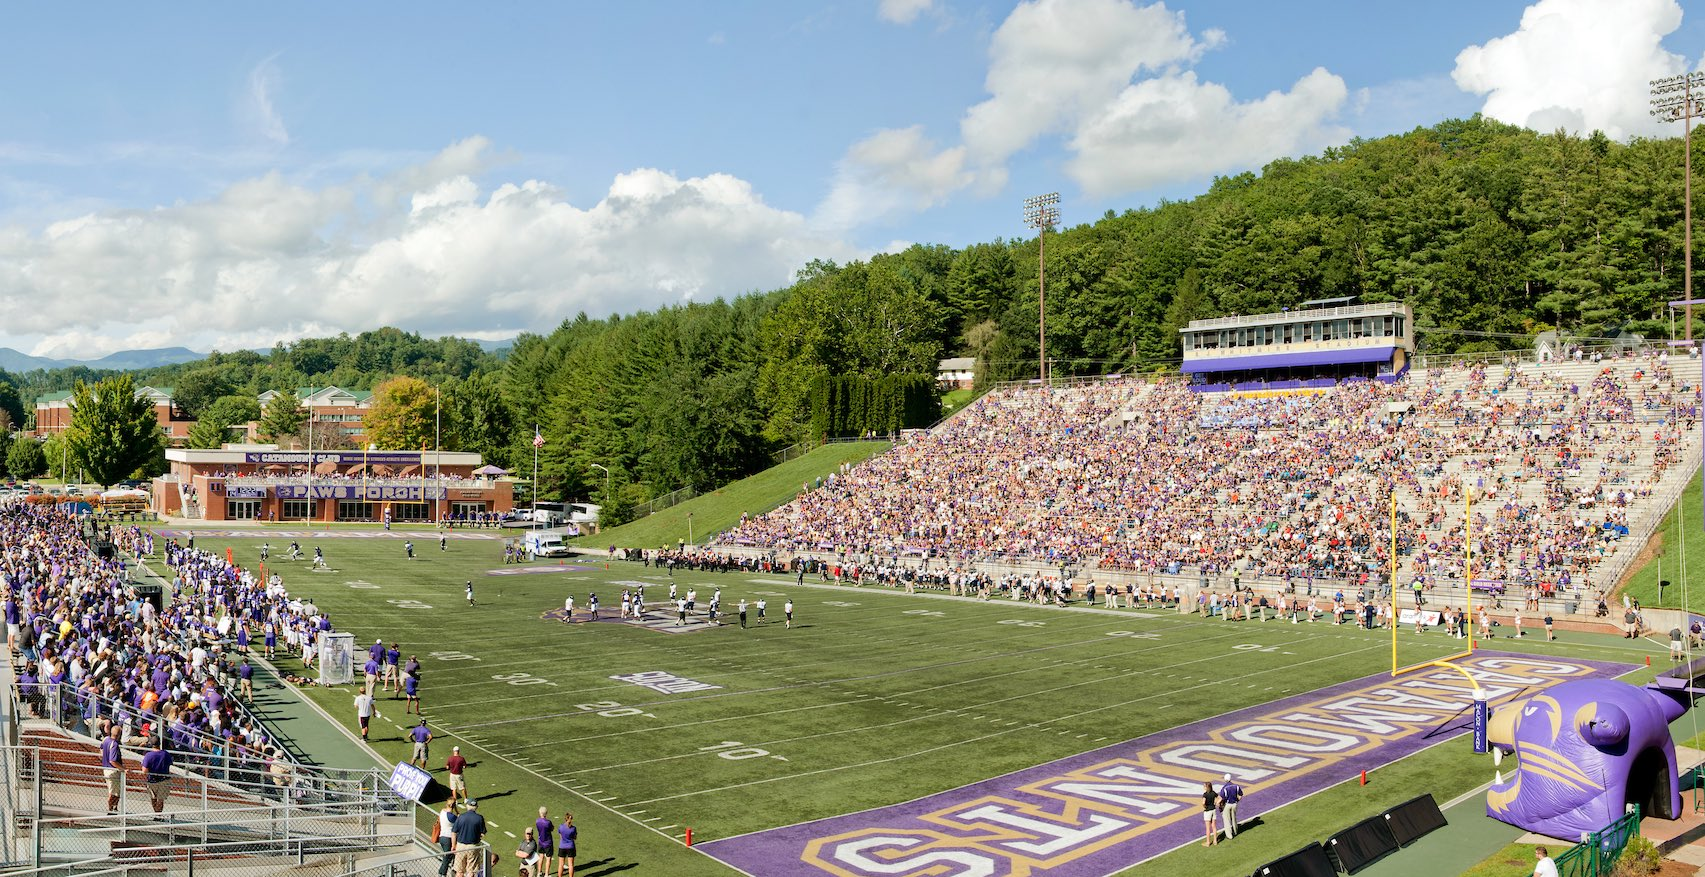 Photo of WCU's football stadium and field on game day